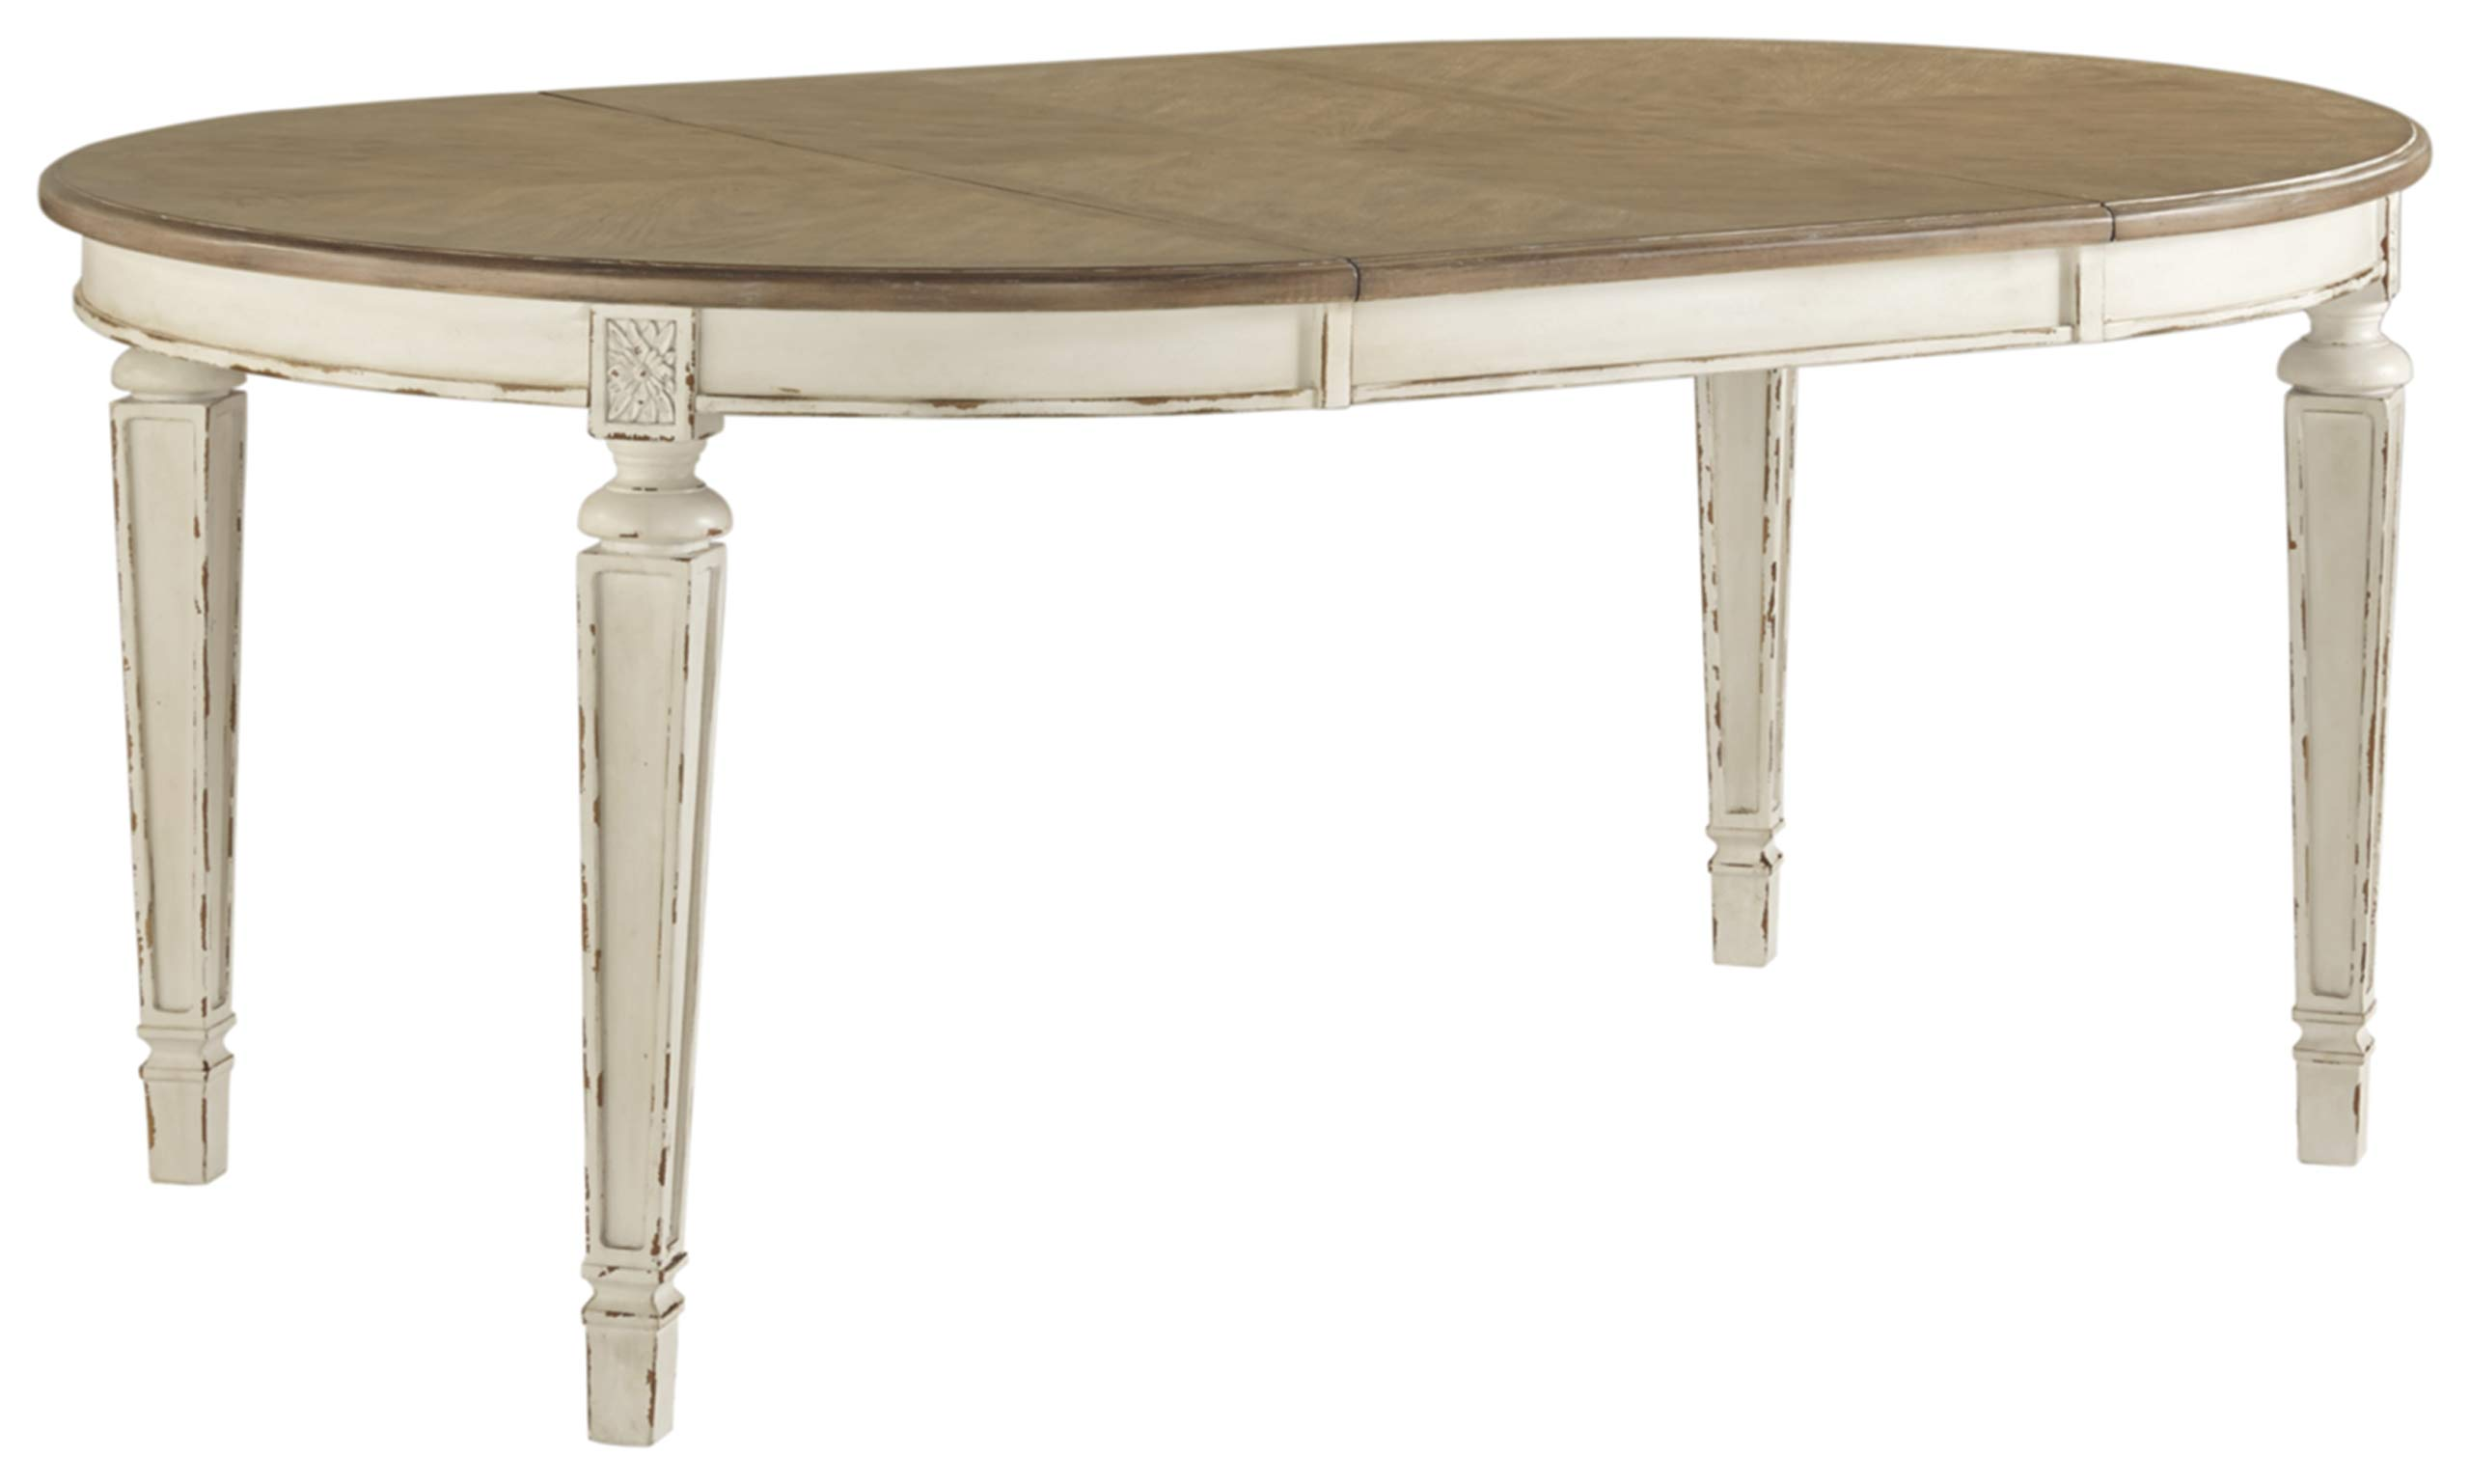 Signature Design by Ashley Realyn Dining Room Table, Chipped White by Signature Design by Ashley